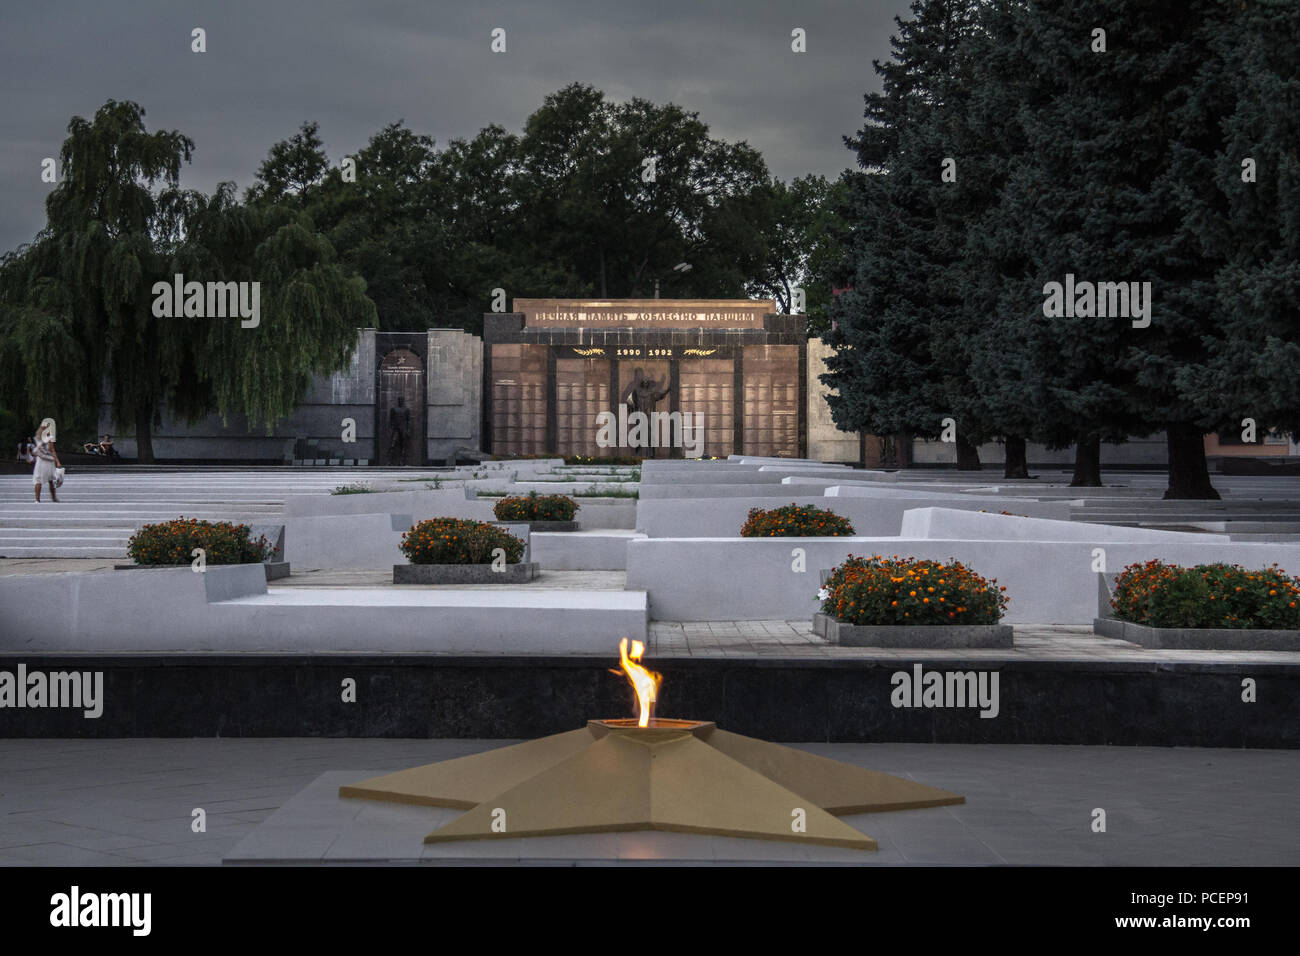 TIRASPOL, TRANSNITRIA (MOLDOVA) - AUGUST 12, 2016: Eternal flame on the war memorial erected to commemorate the 1990-1992 Transnitria civil war and th - Stock Image